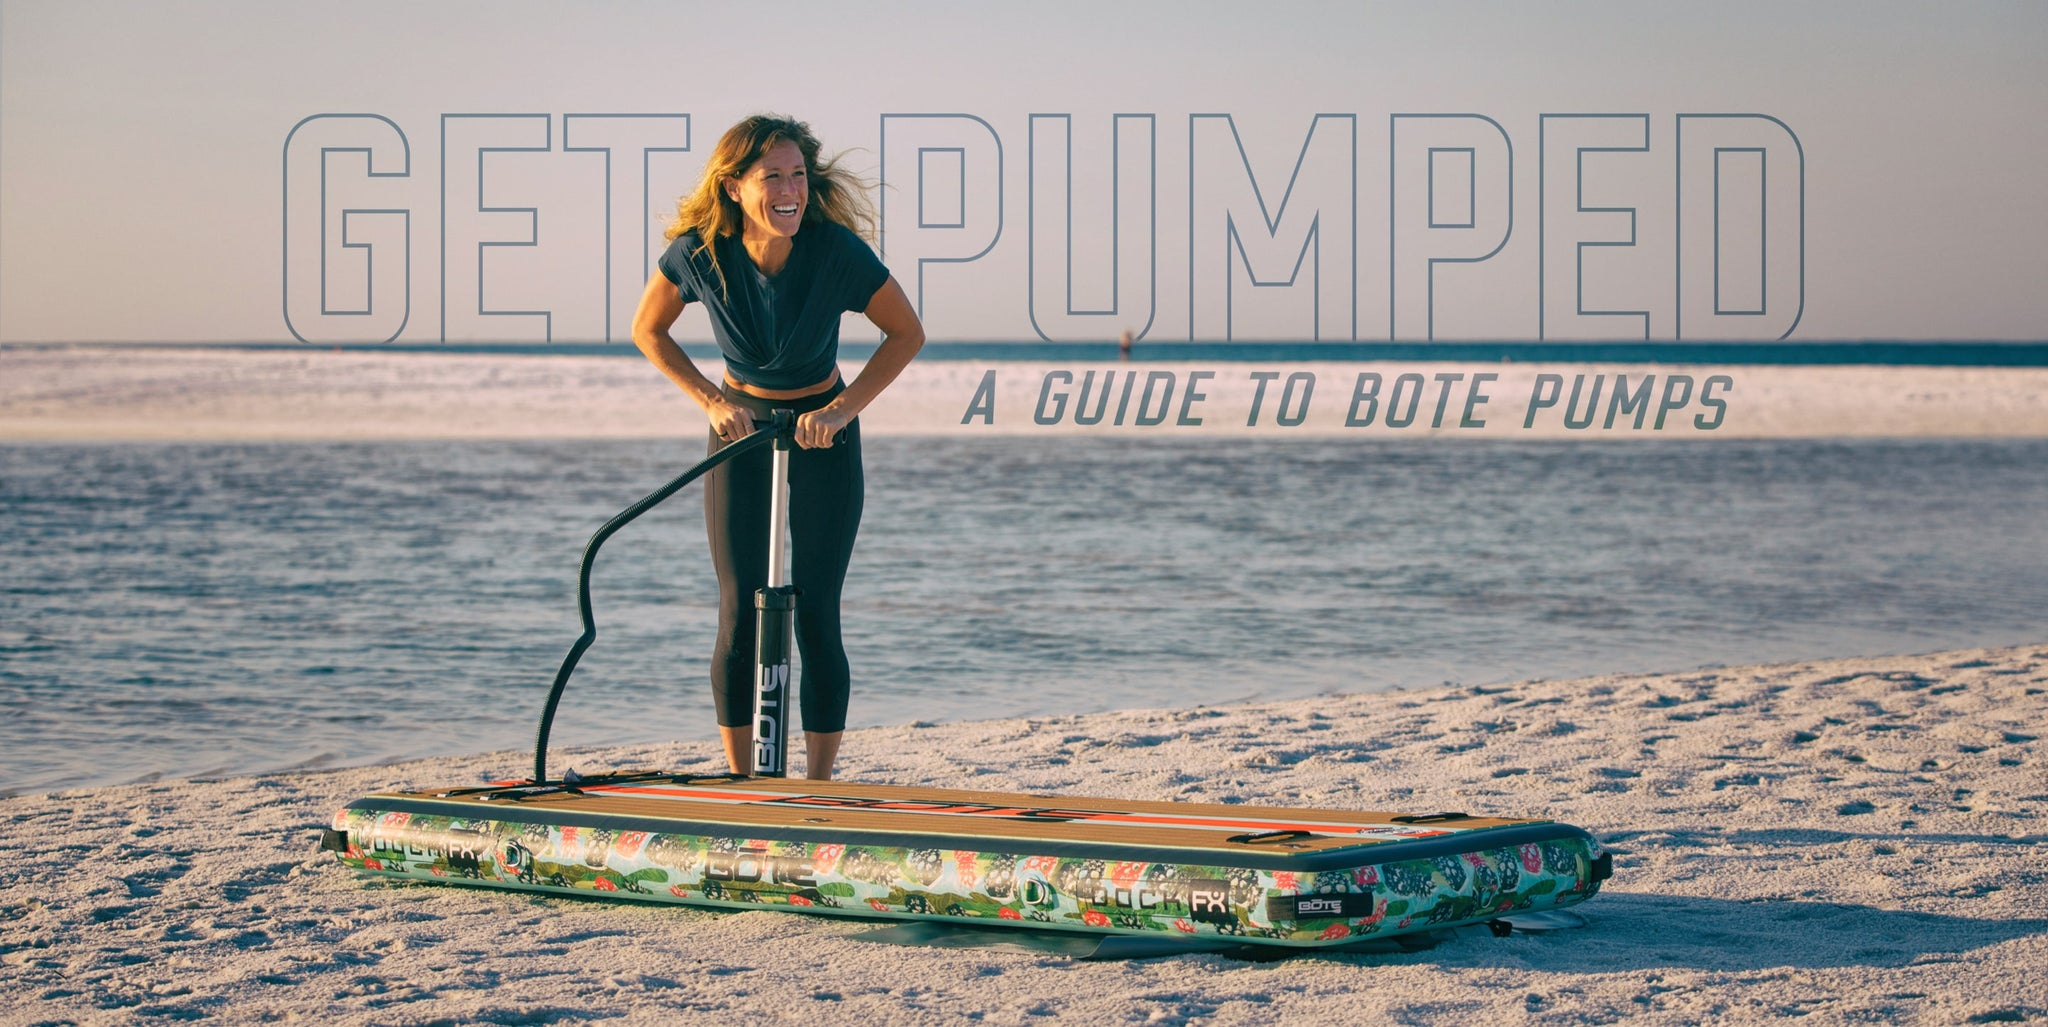 Get Pumped: A Guide to BOTE Pumps